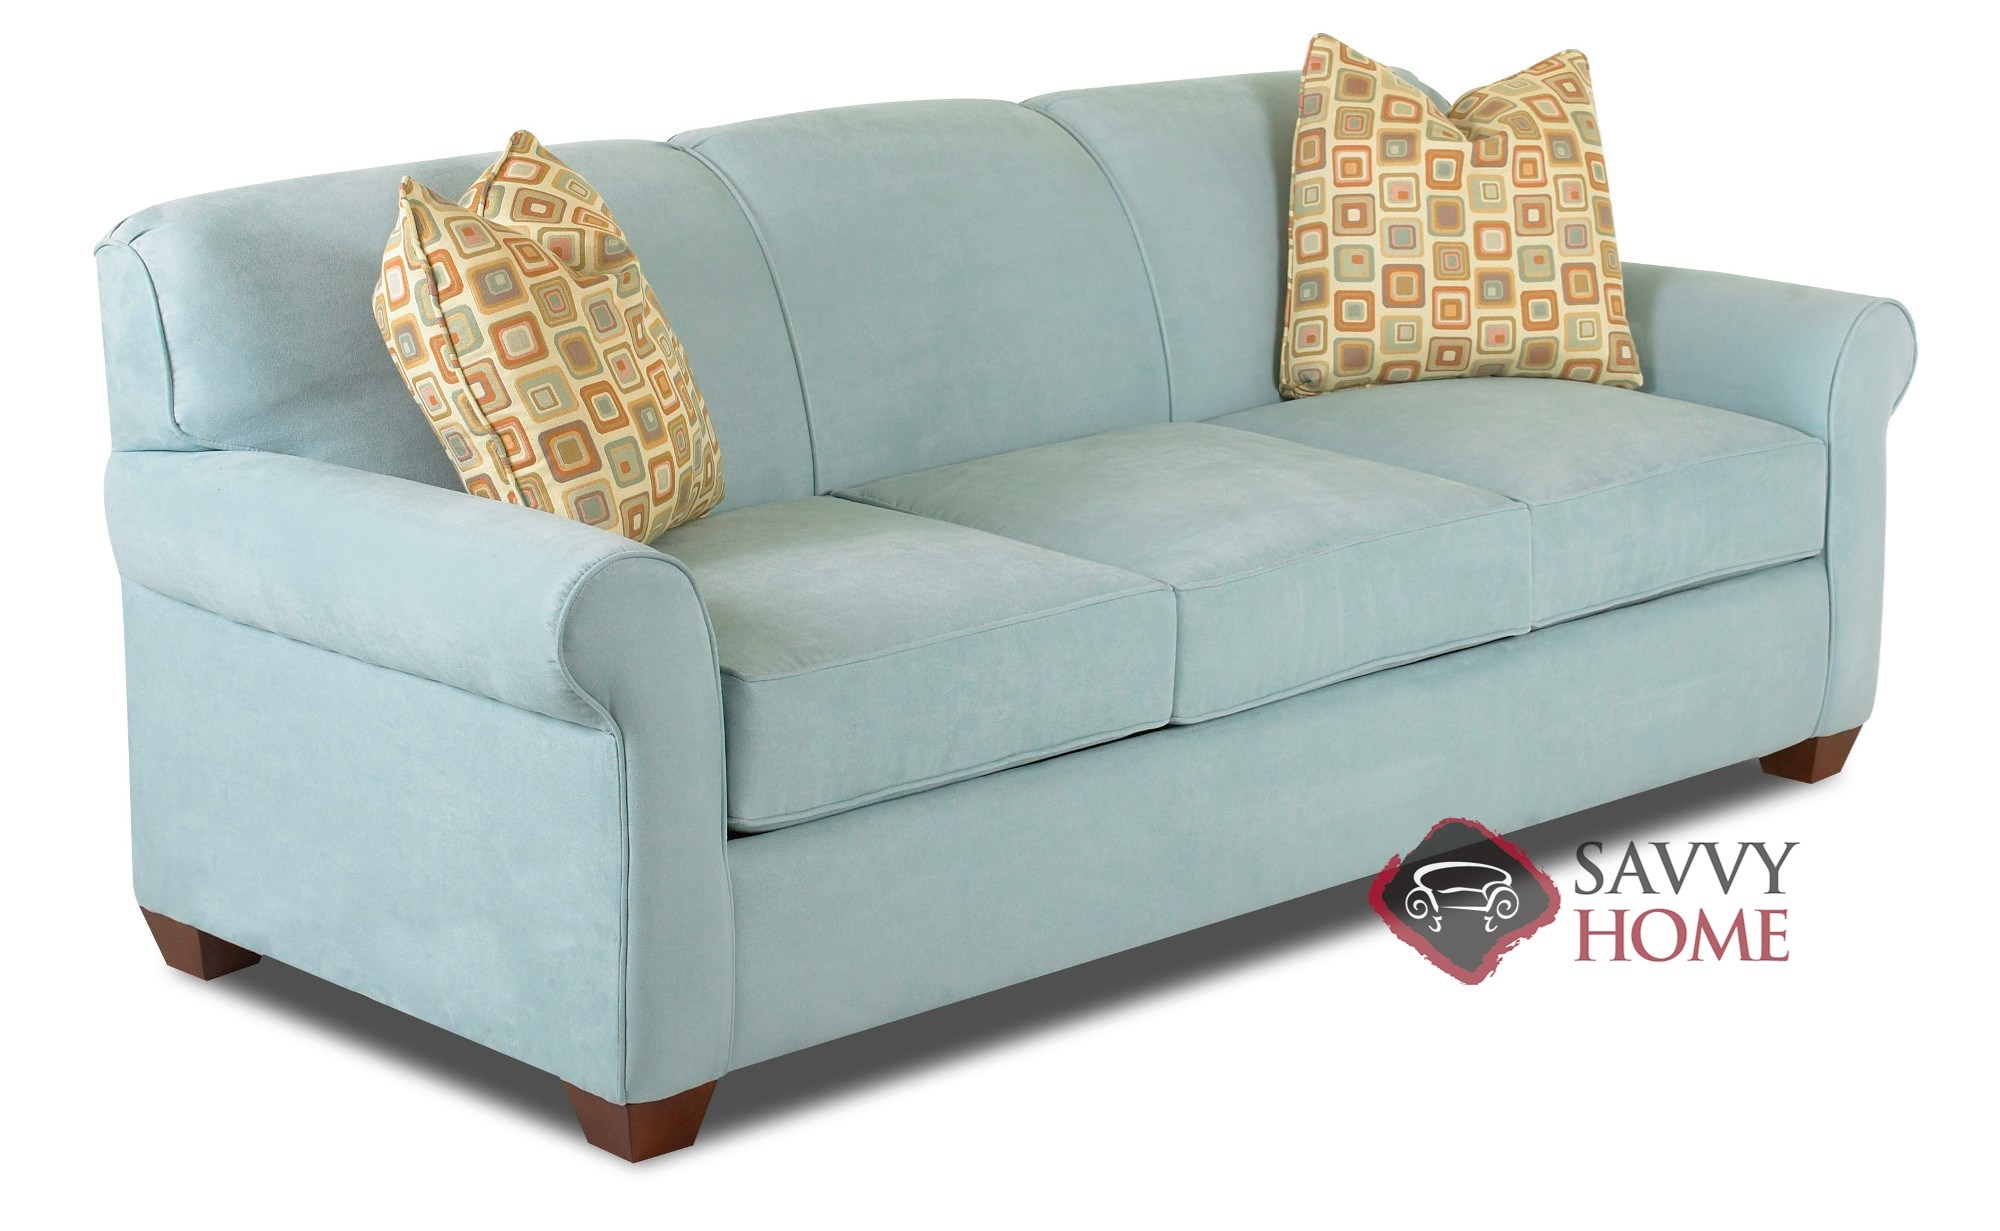 Amazing Calgary Queen Sofa Bed By Savvy Caraccident5 Cool Chair Designs And Ideas Caraccident5Info